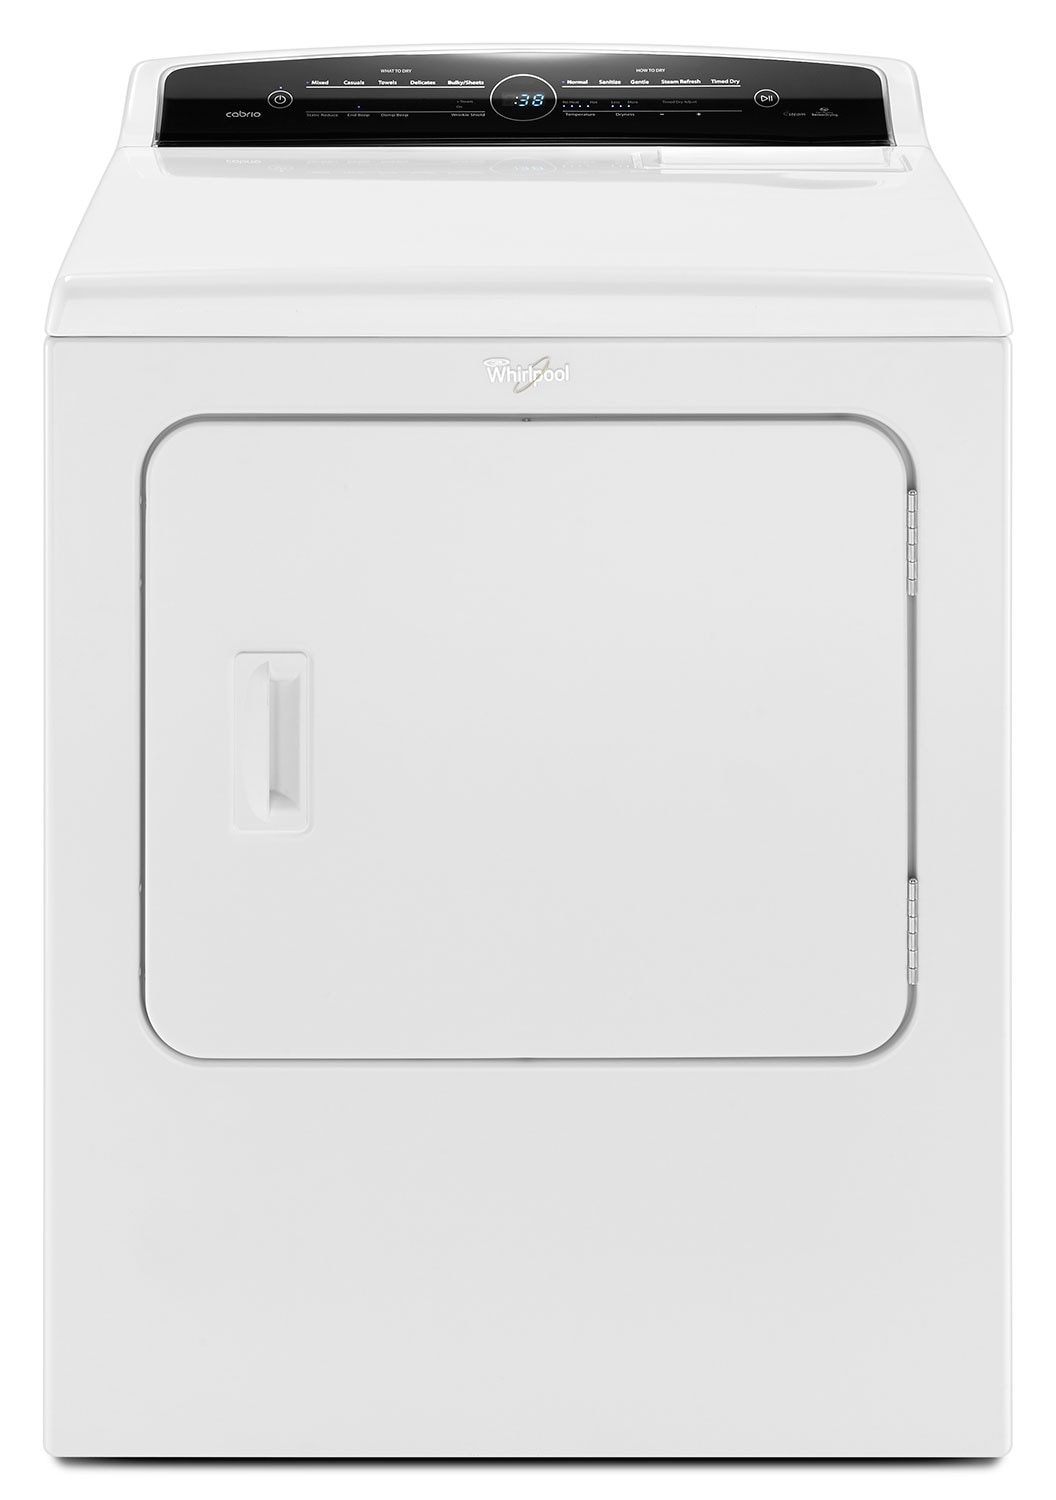 Whirlpool® Cabrio® 7.0 Cu. Ft. Gas Dryer - White